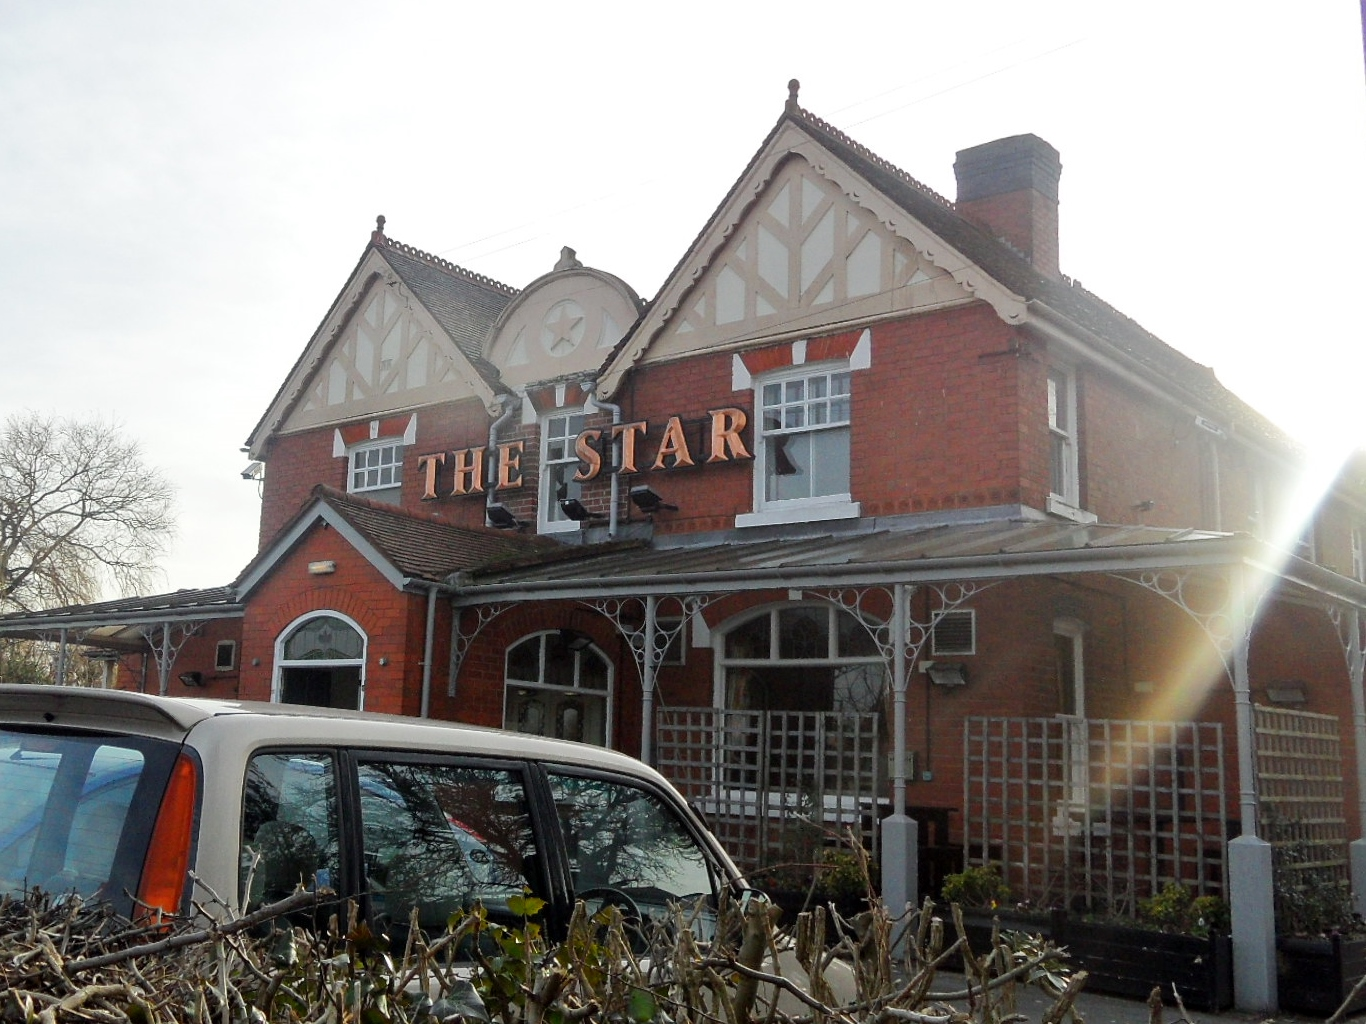 The Star Inn. Burntwood